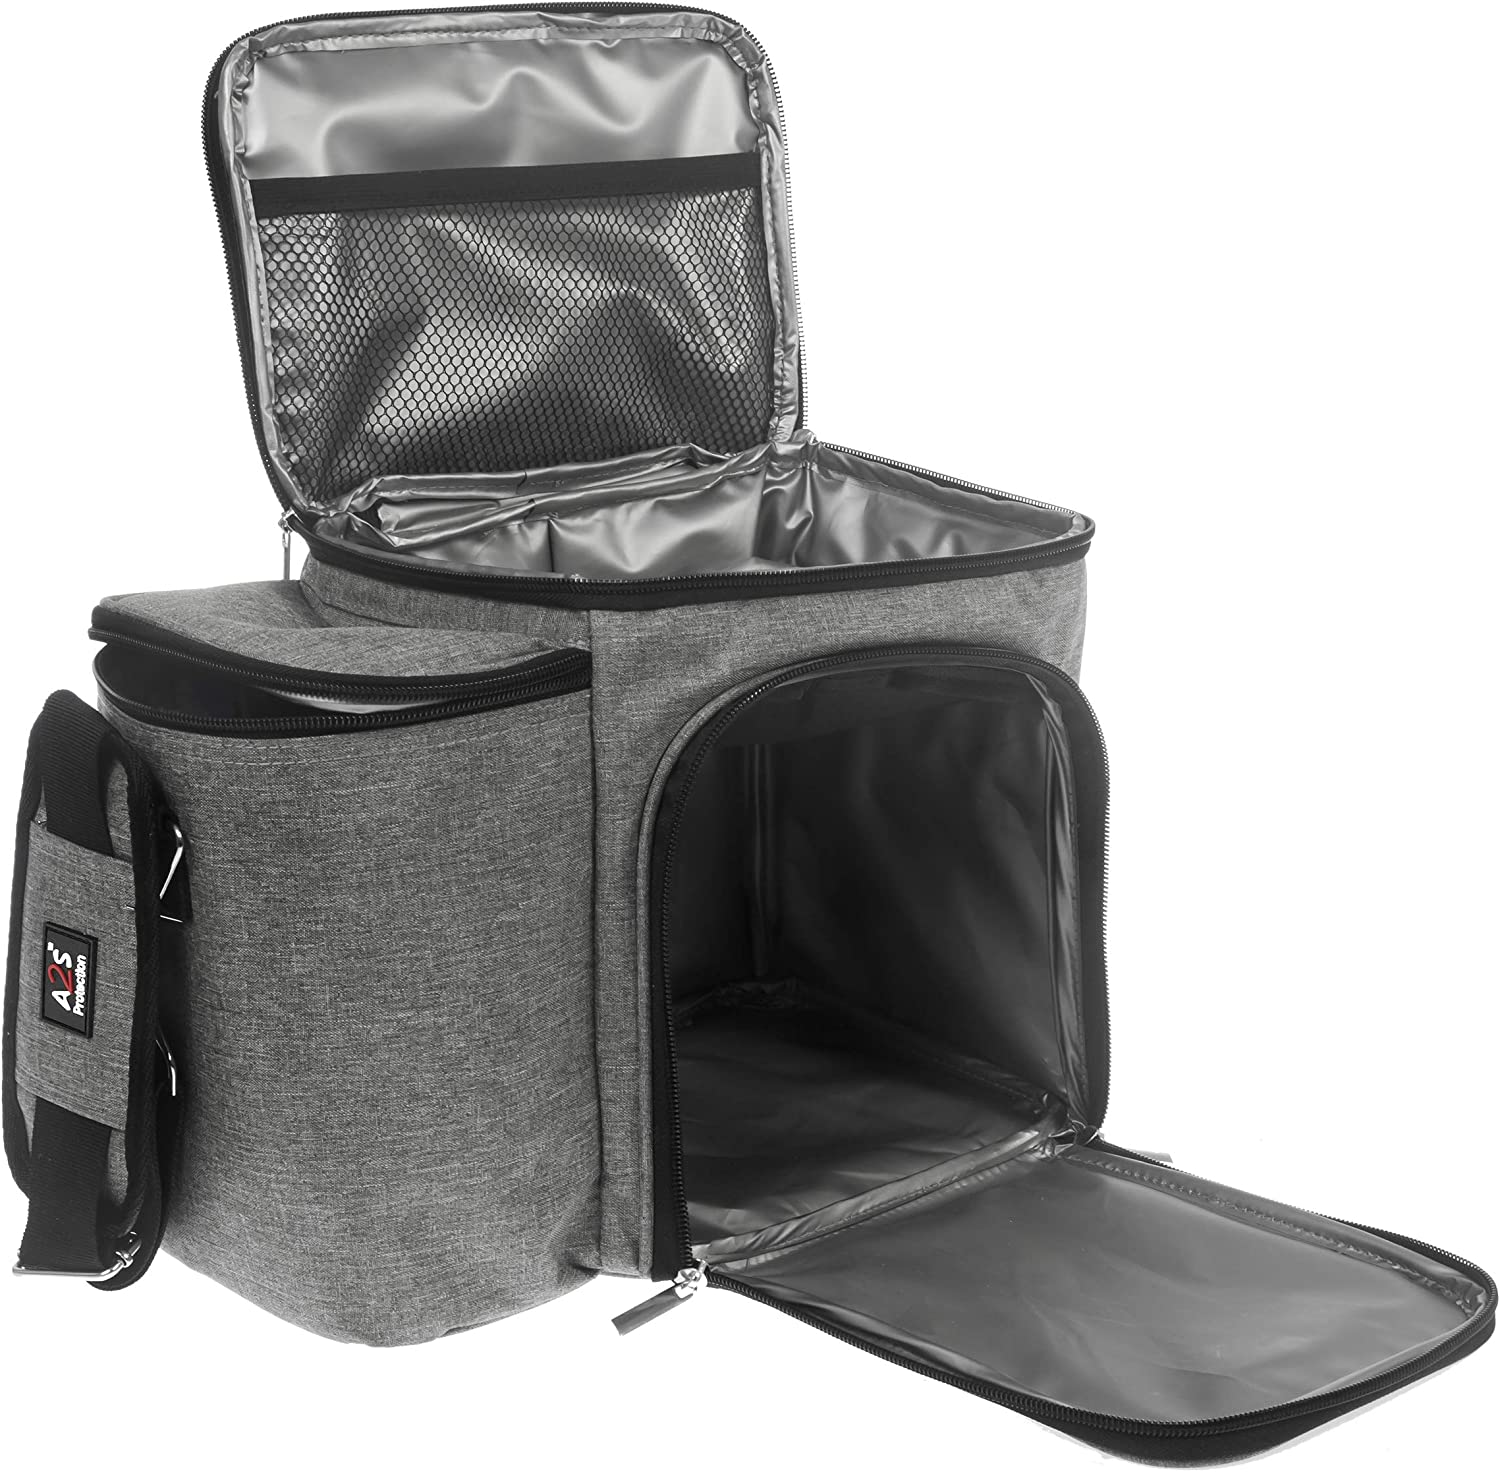 A2S Meal Prep Lunch Box - Cooler Bag - Meal Bag - Keep your Daily Food Snacks & Beverages Cool and Intact (Gray Bag Only)